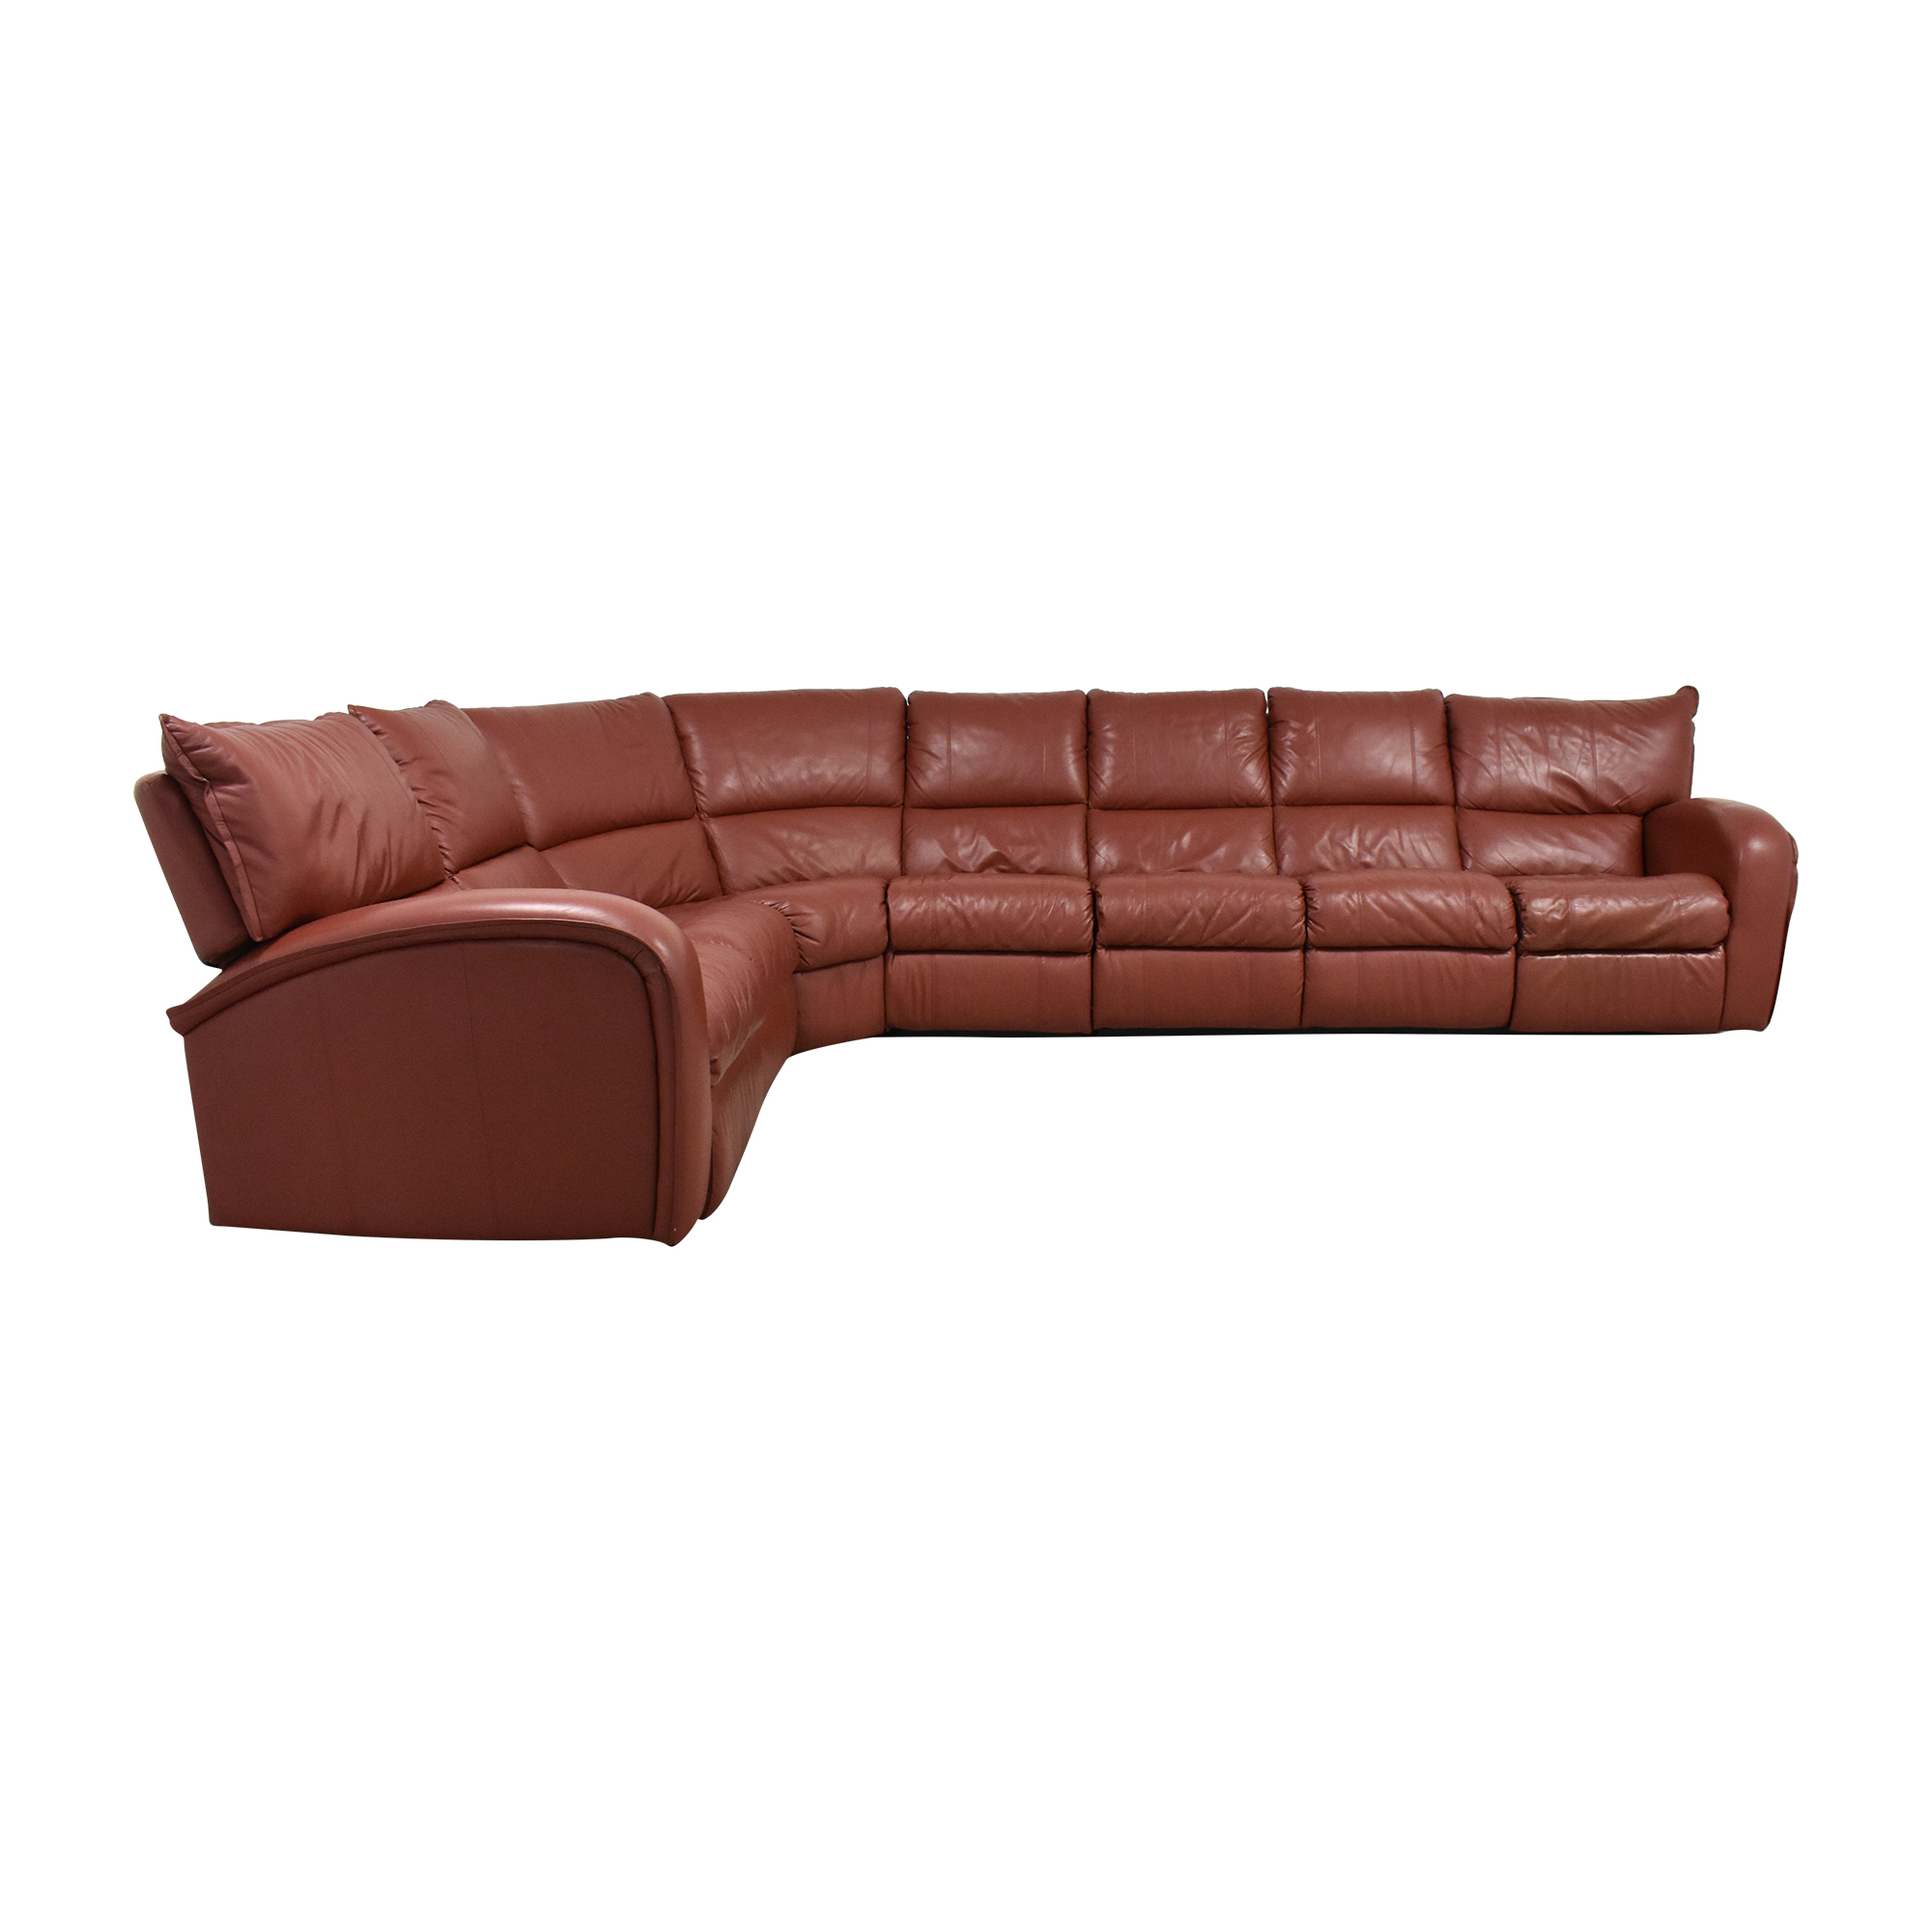 Corner Sectional Sofa with Recliners second hand